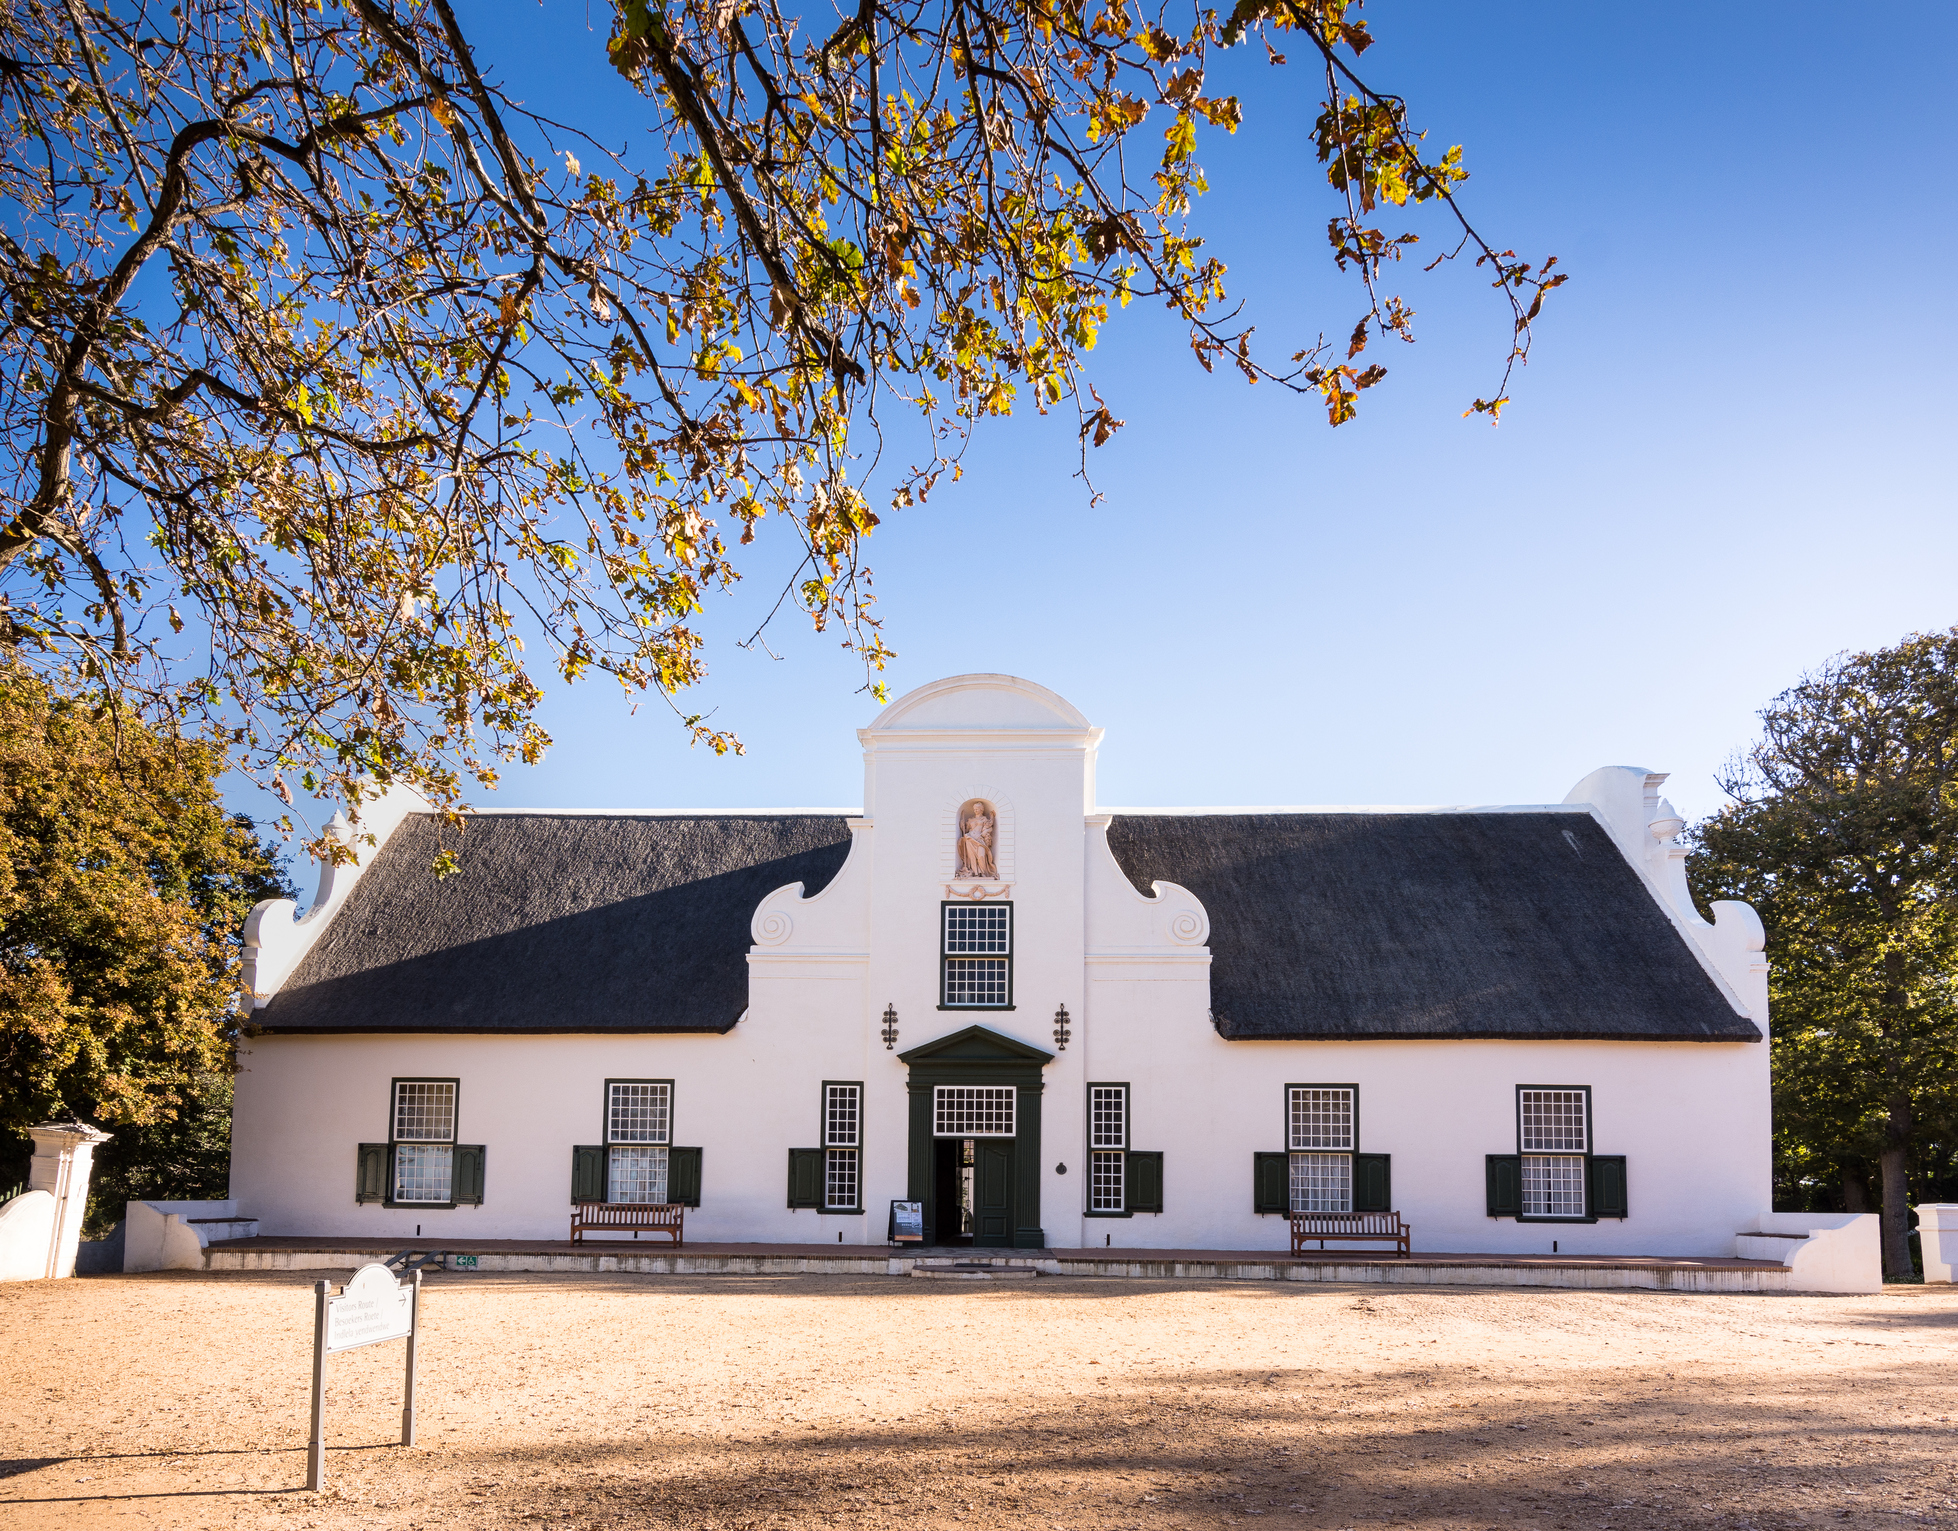 Images: ©iStock - Groot Constantia farm house in Cape Town, South Africa